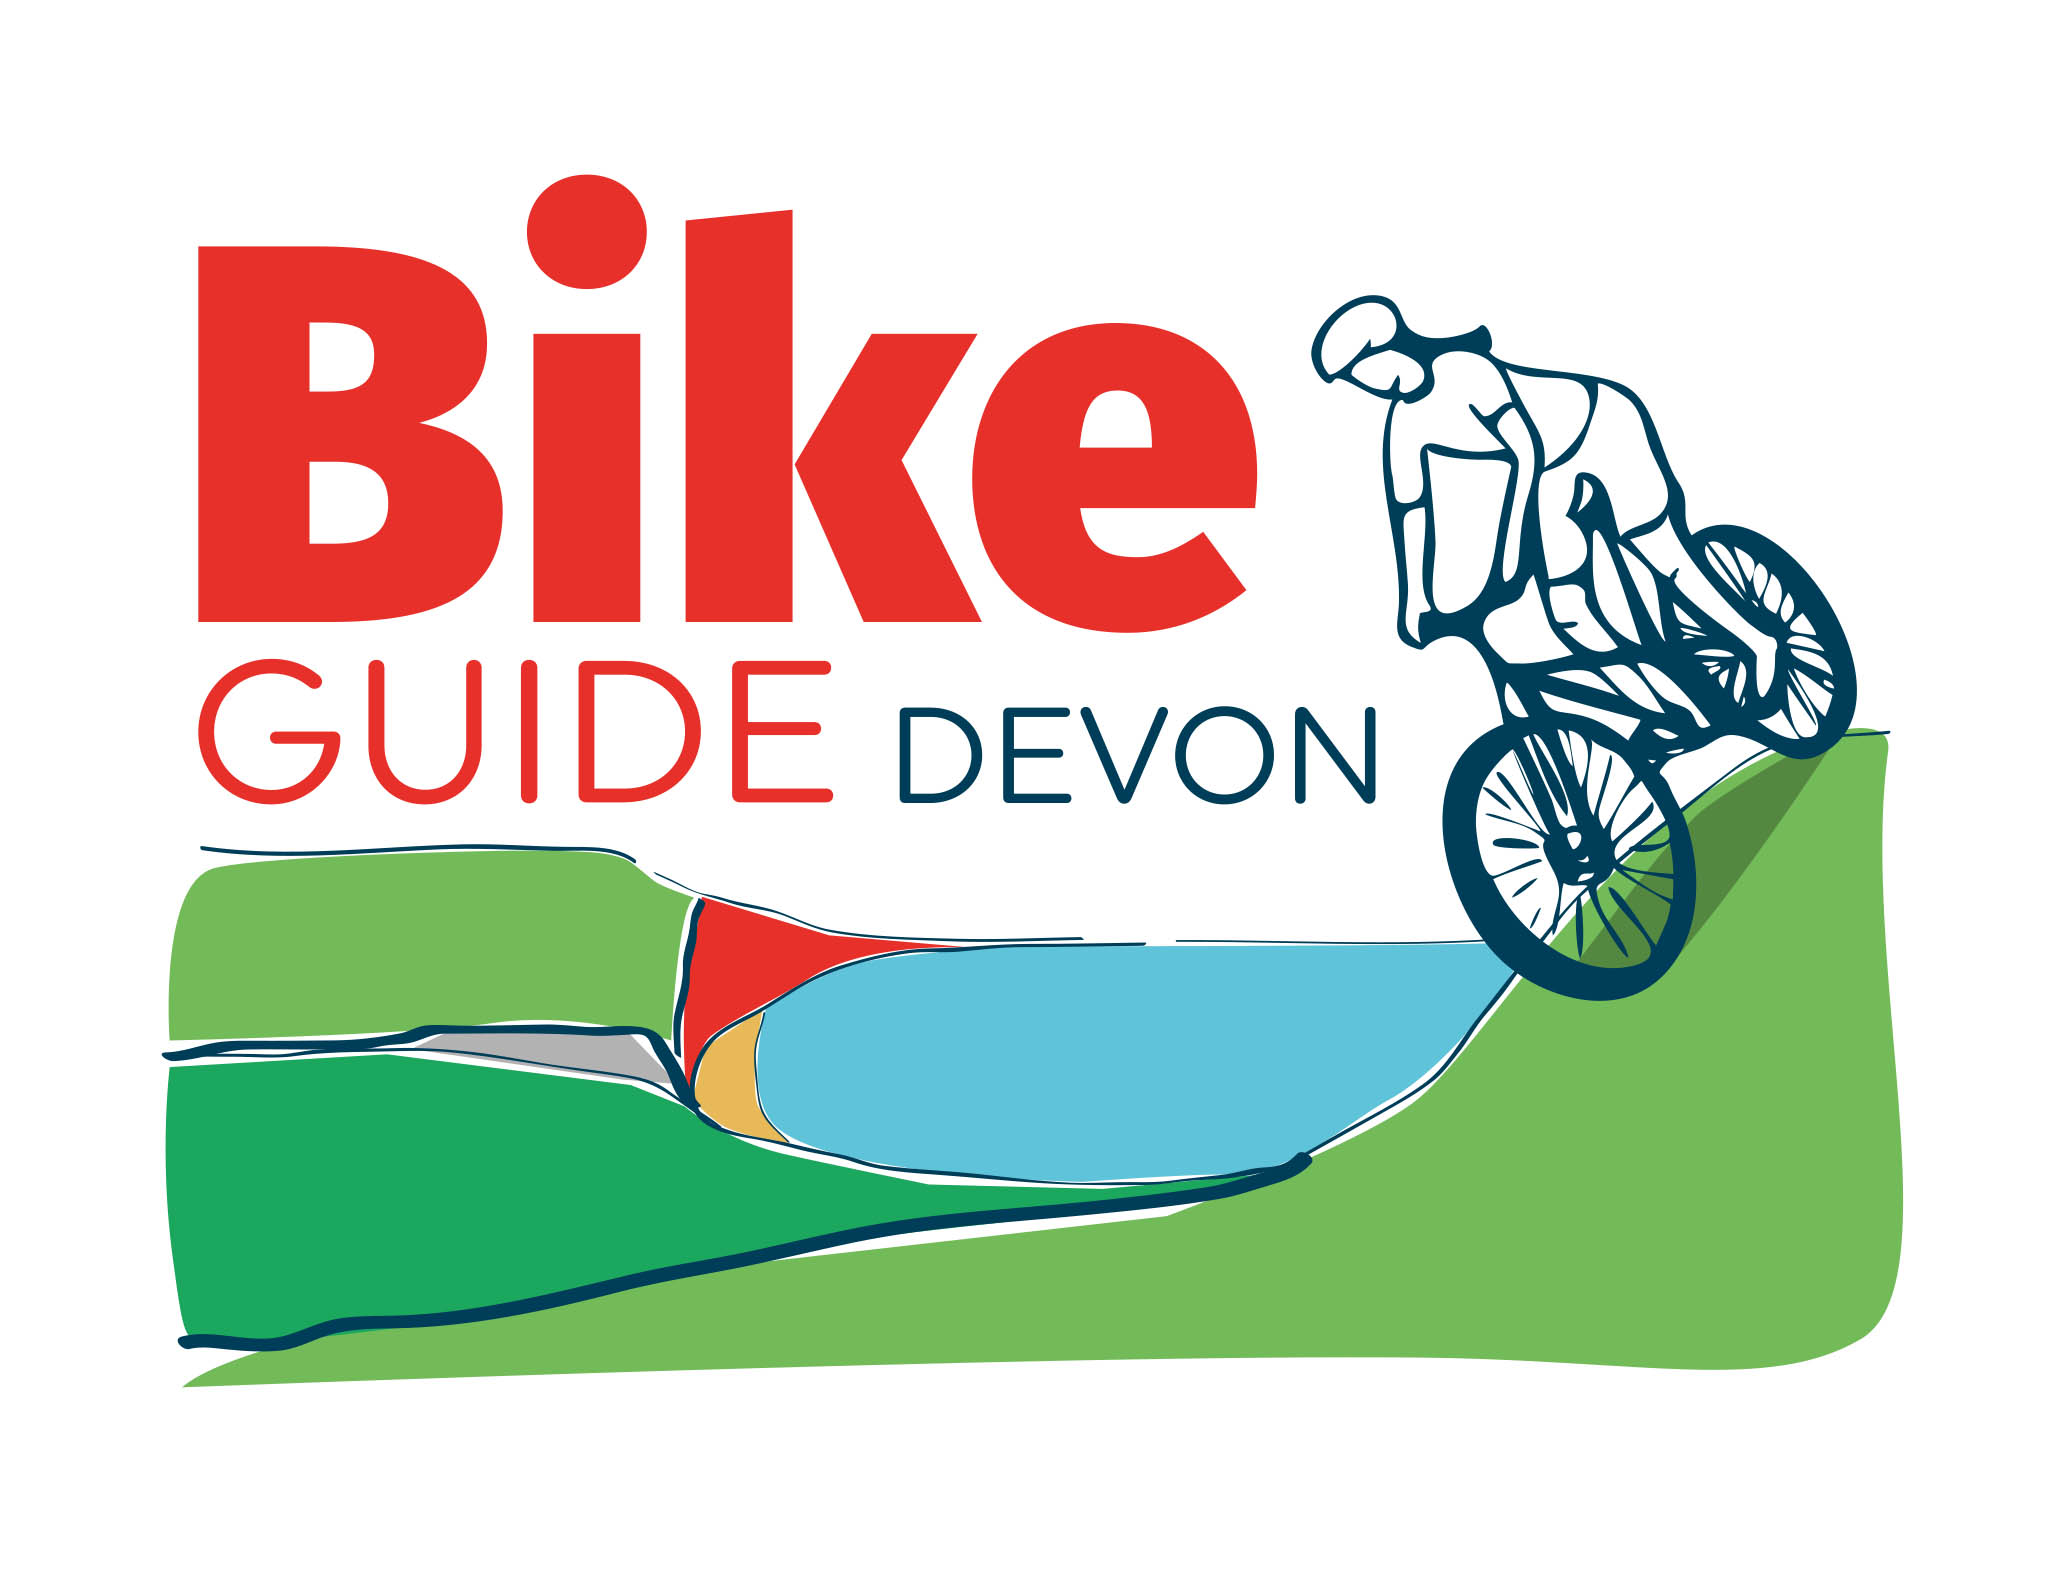 Bike Guide Devon